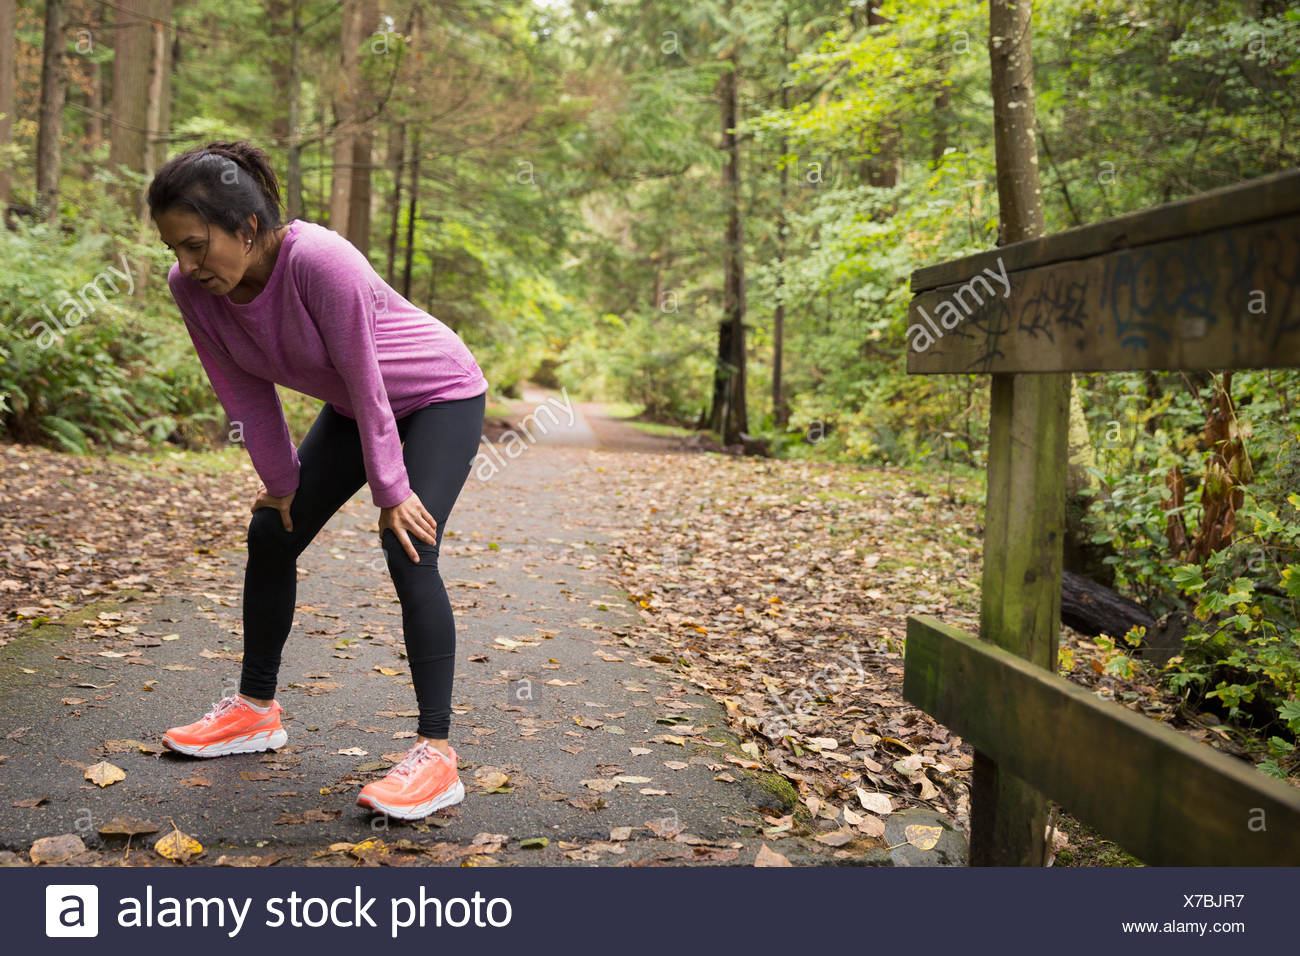 Tired woman resting hands knees after run woods - Stock Image